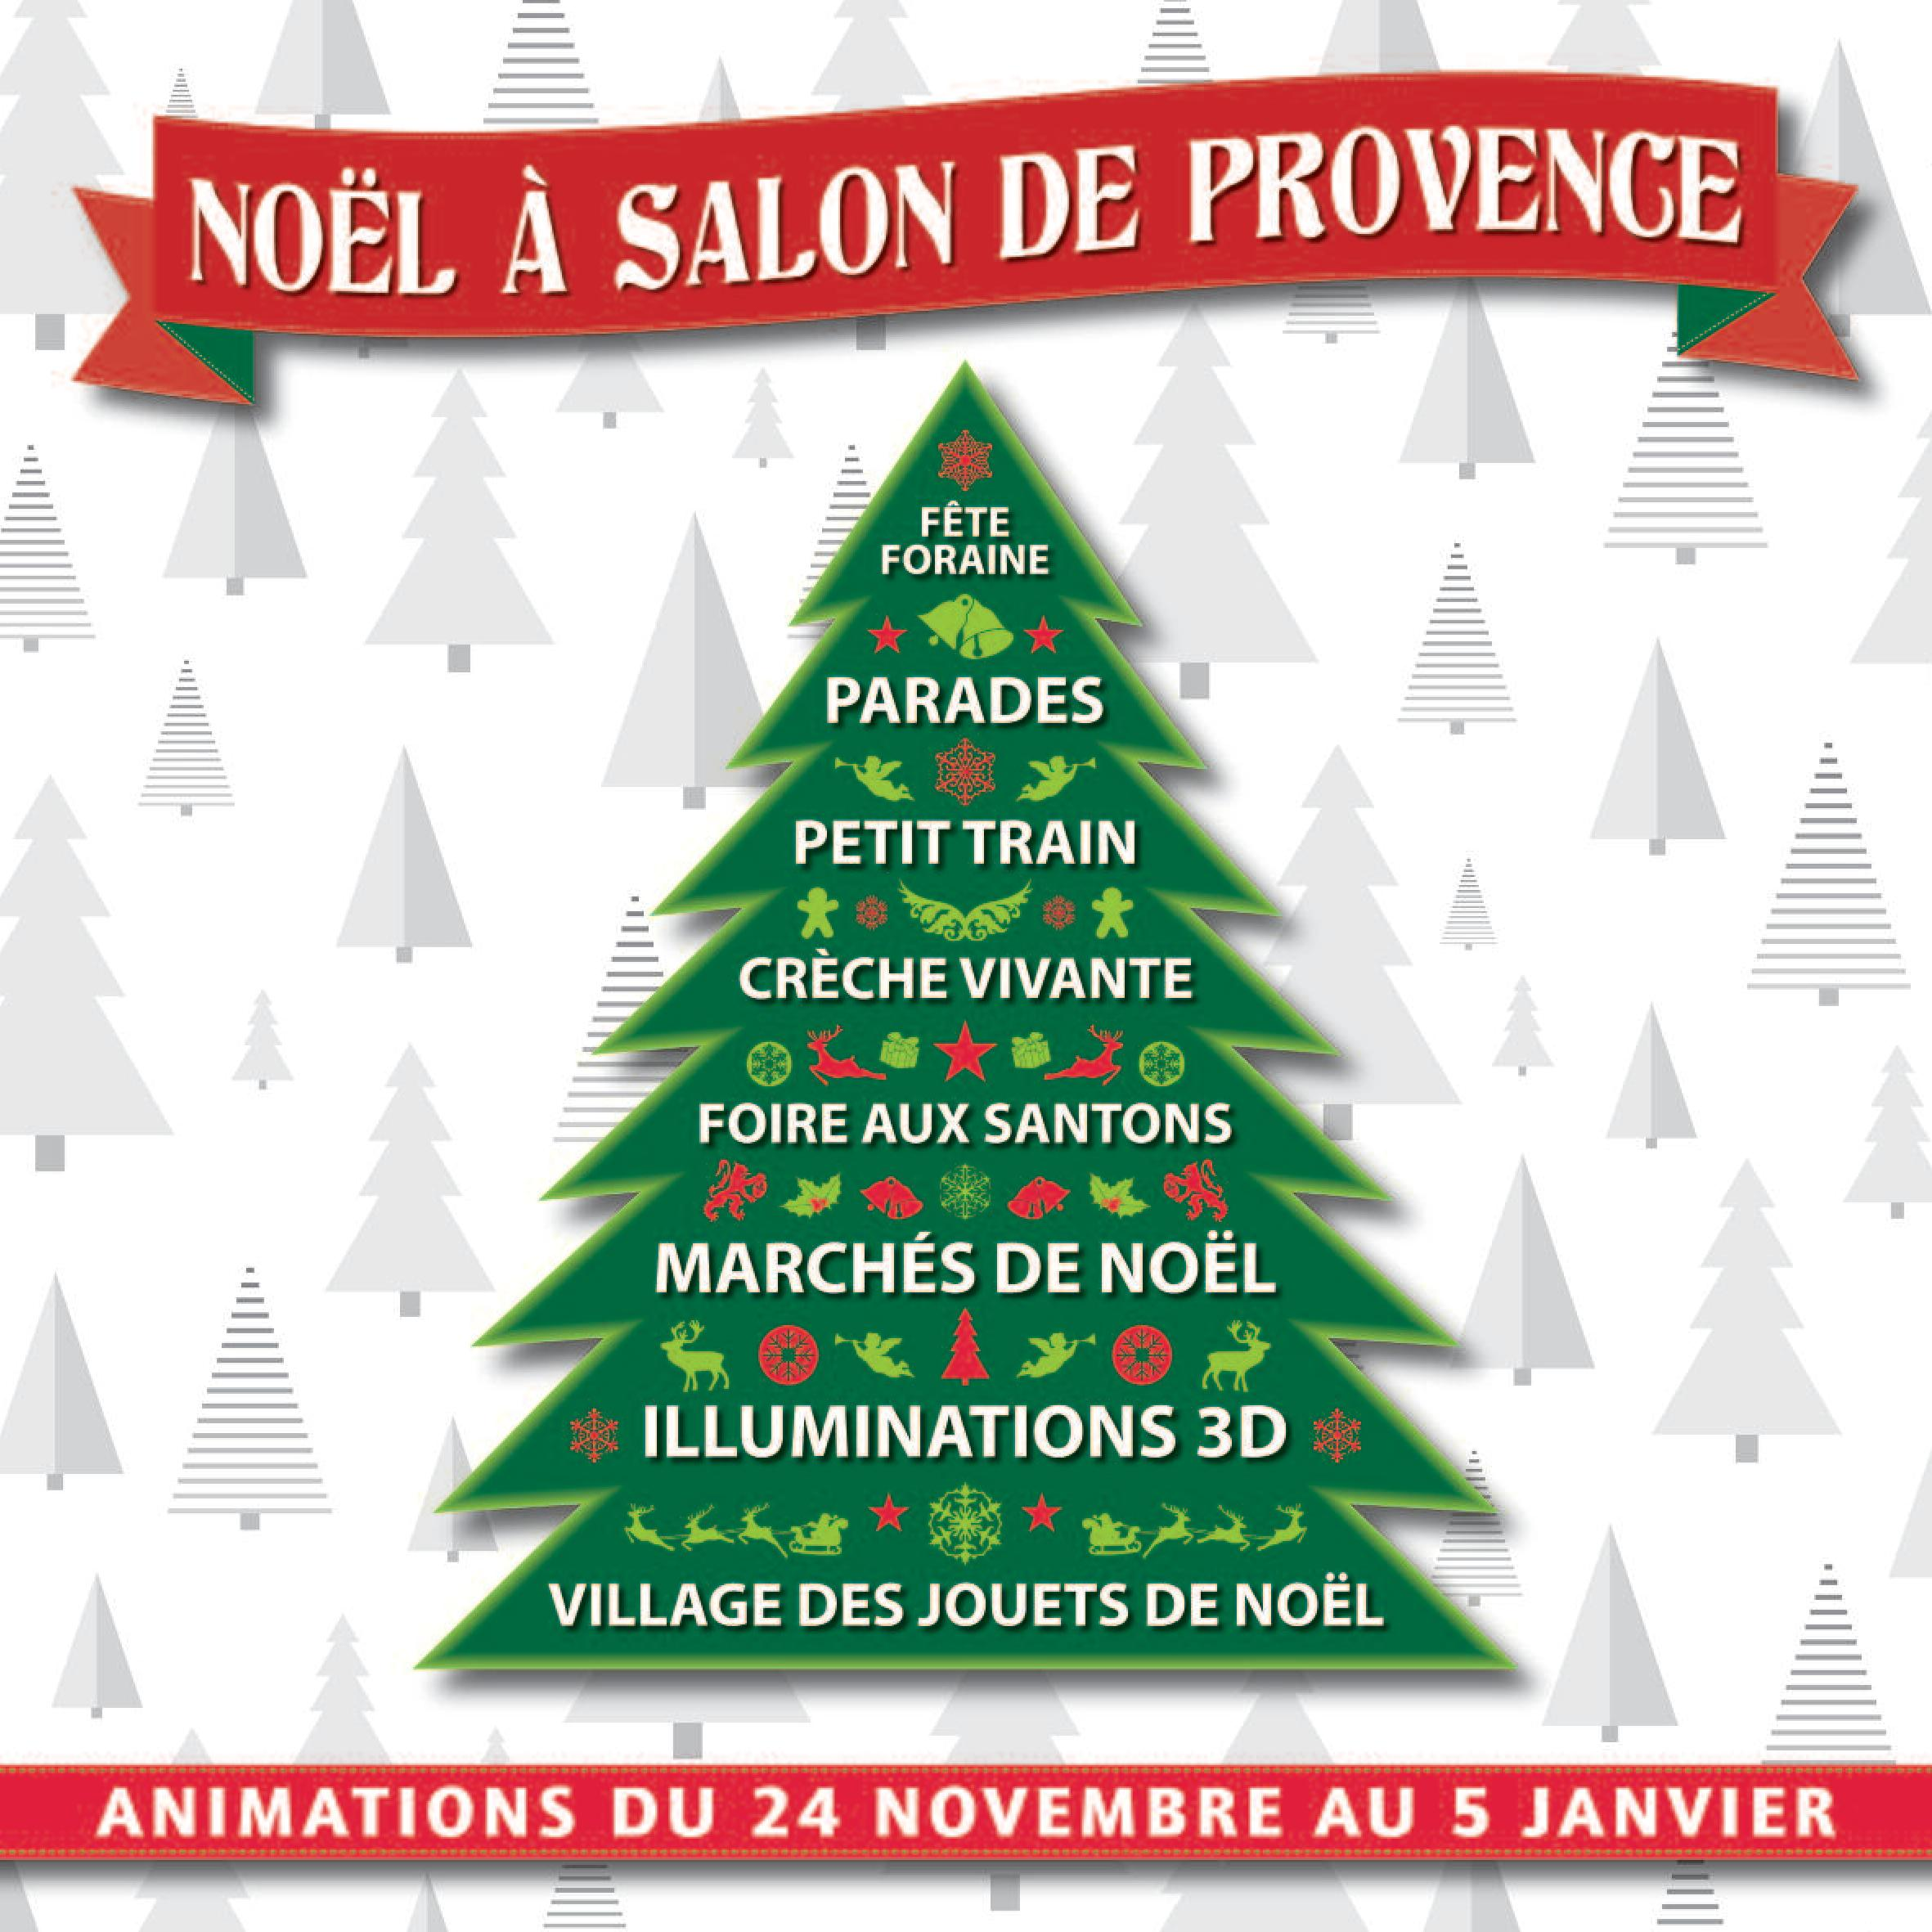 Guide Noël salon 2018 (1)